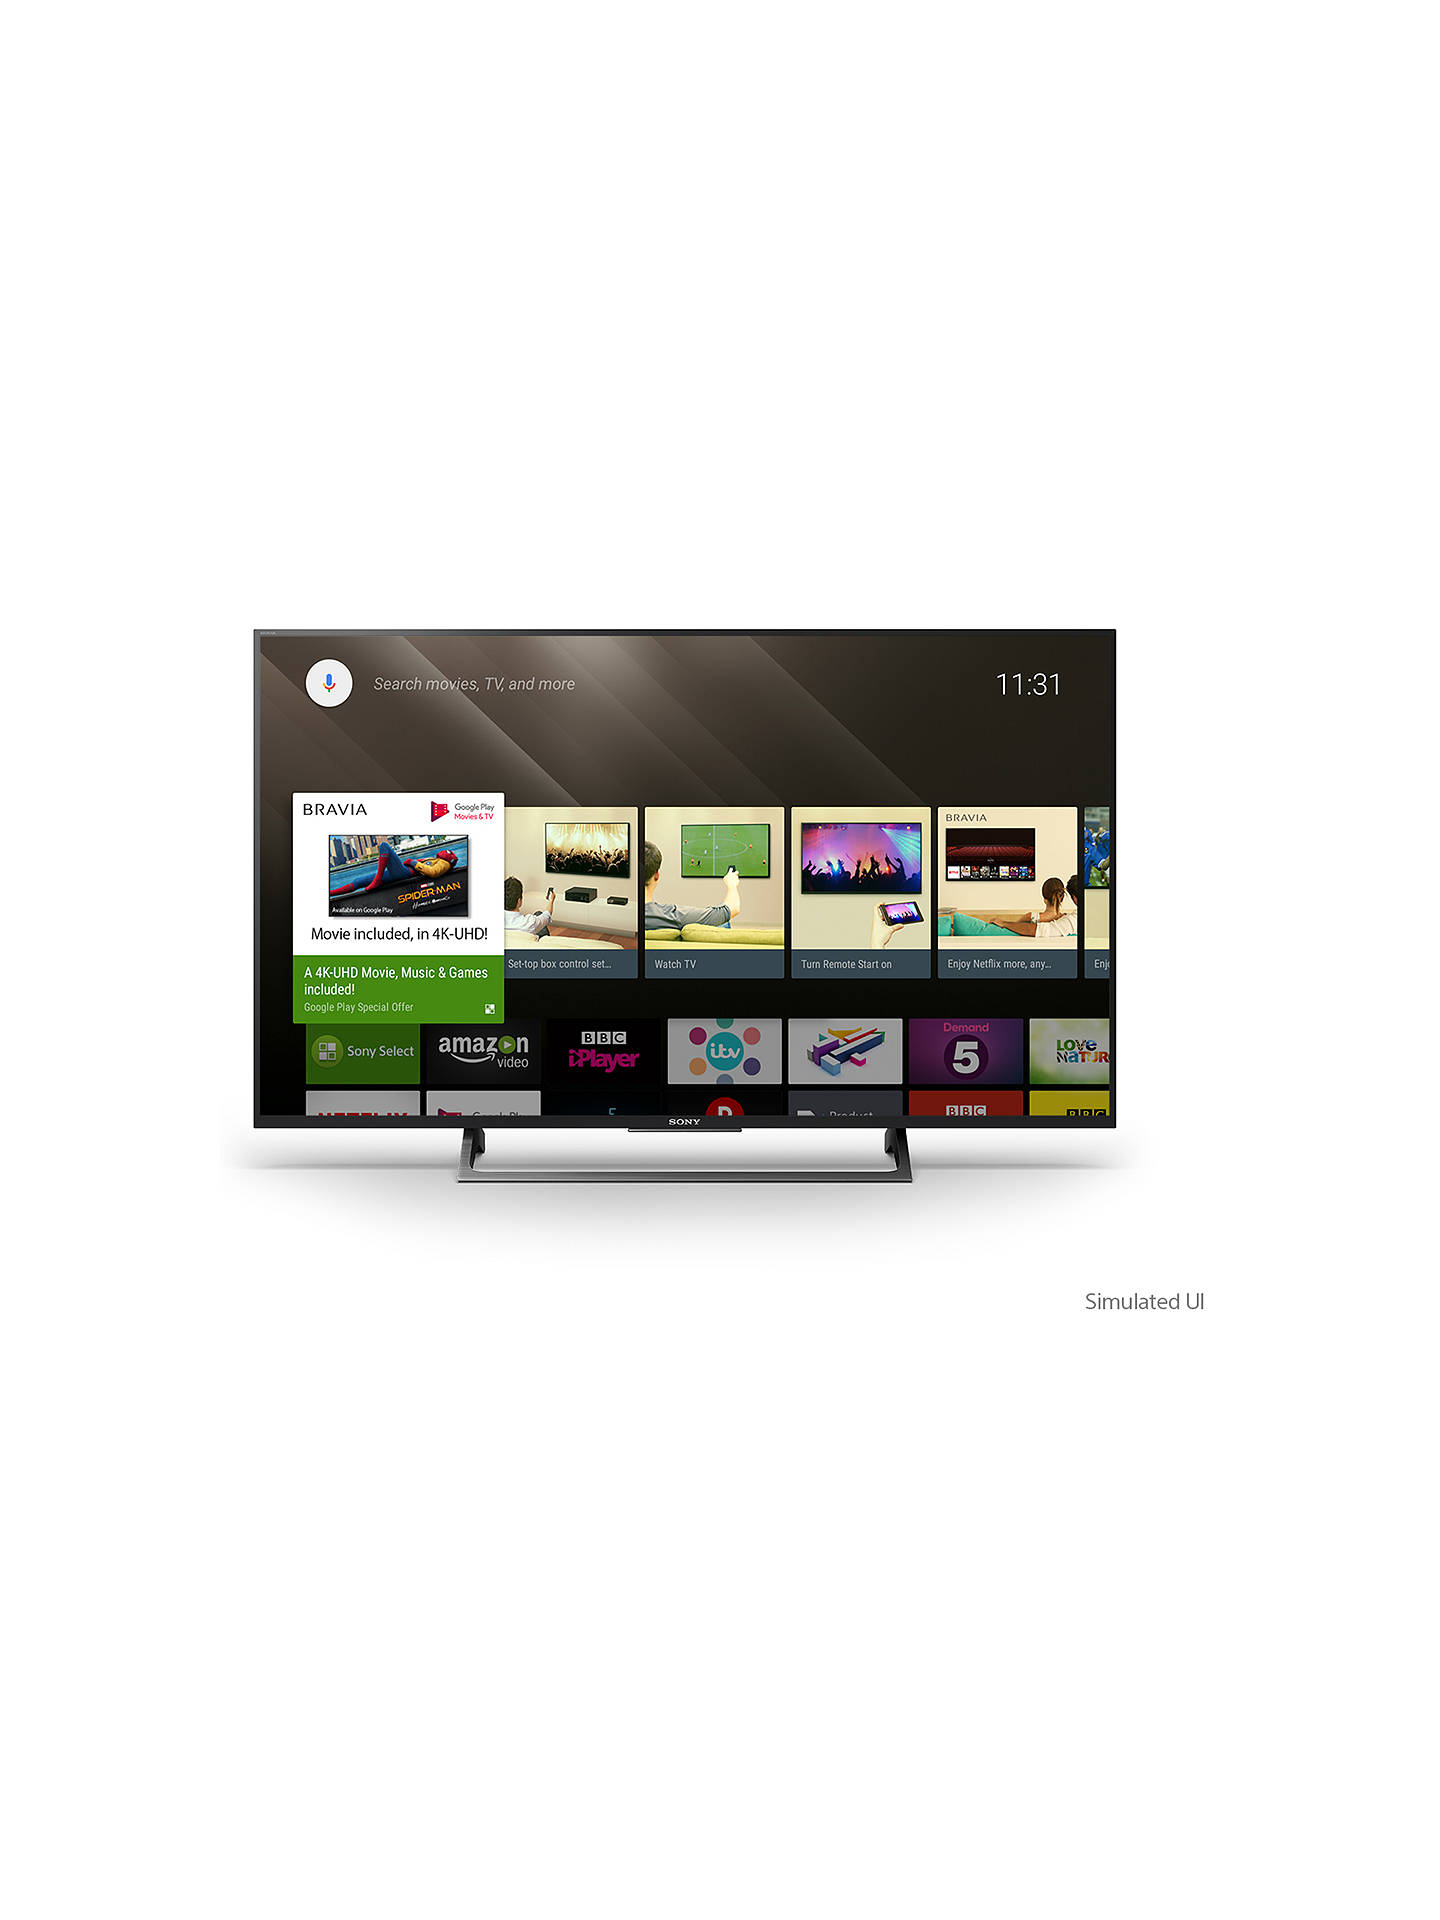 Sony Bravia KD43XE8005 LED HDR 4K Ultra HD Smart Android TV, 43